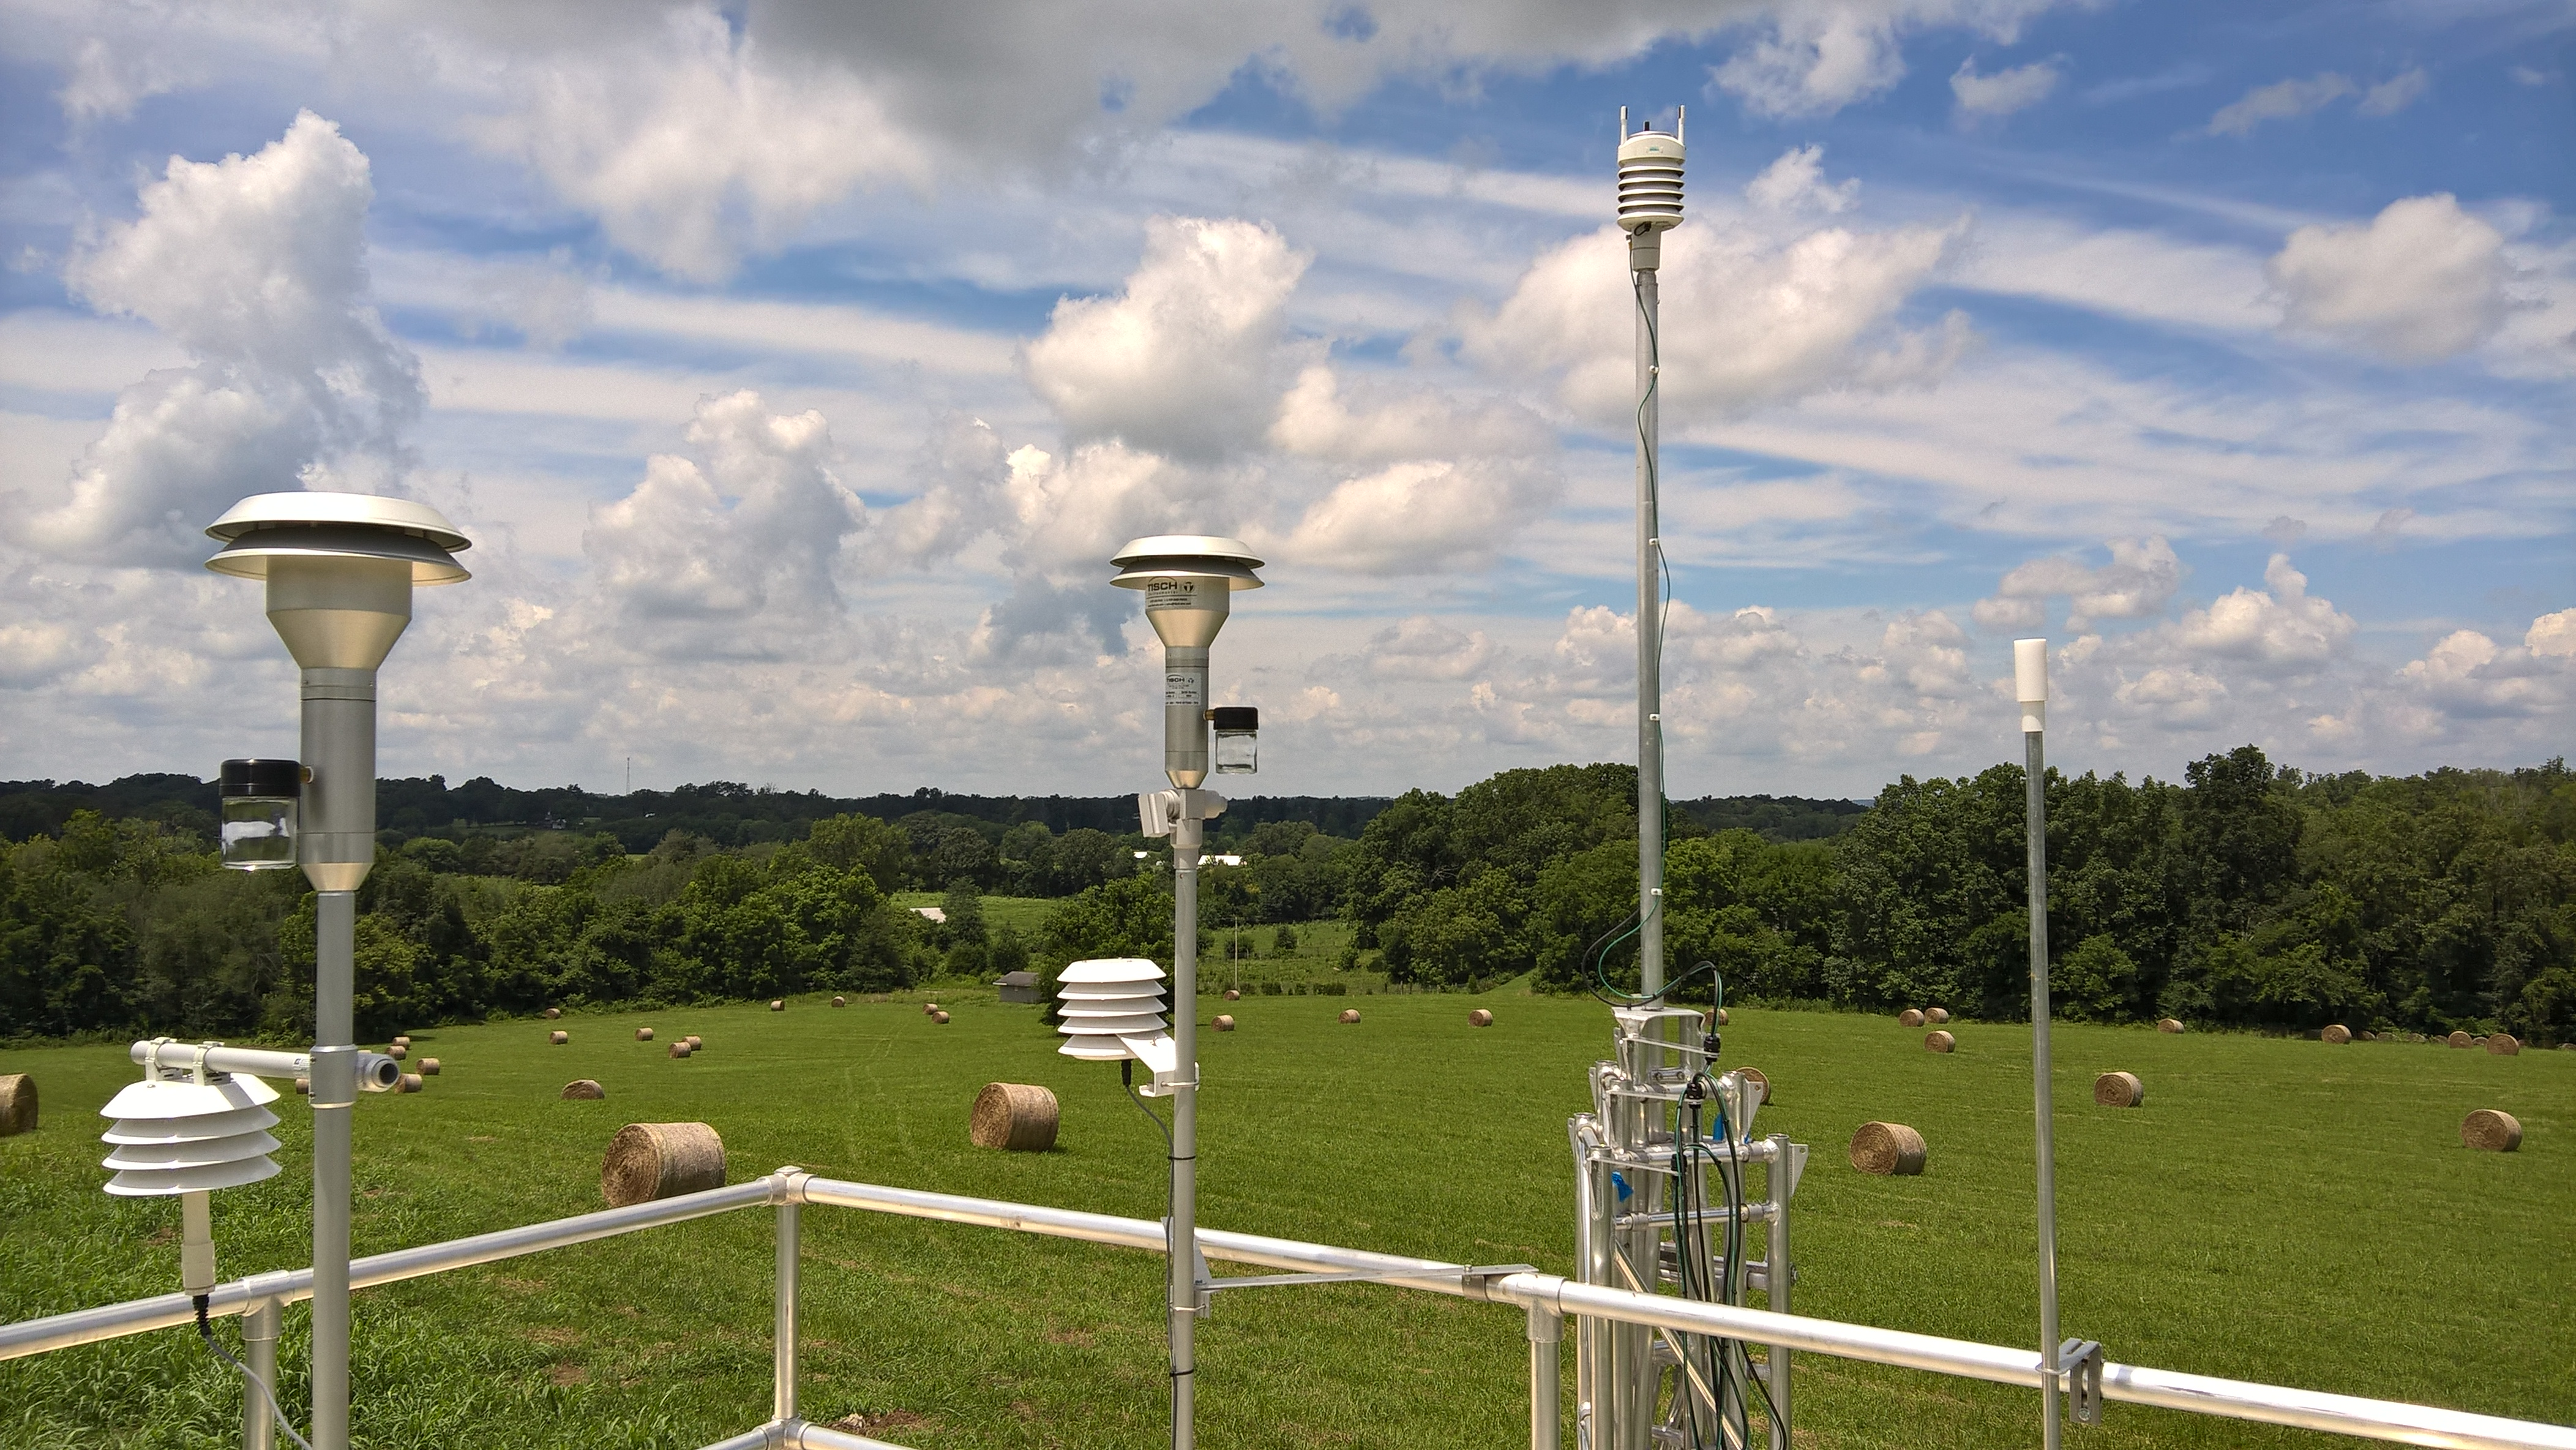 Air Sampling System : Ambient air quality monitoring system installed